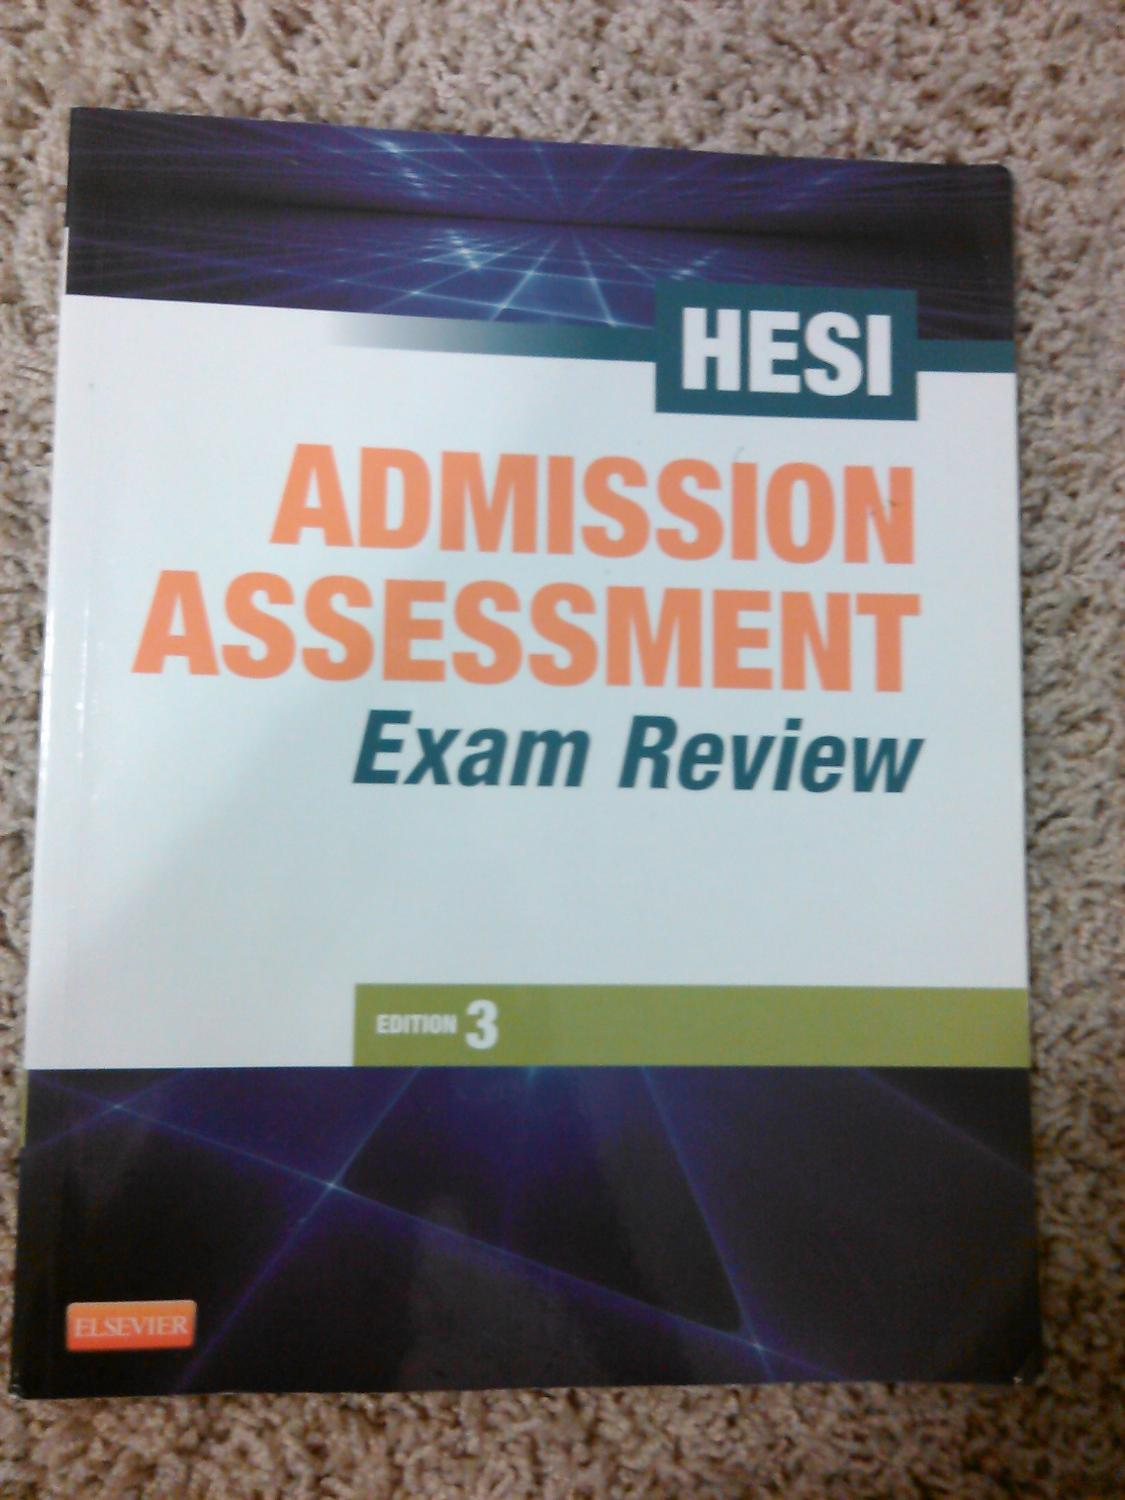 Best hesi admission assessment exam review for sale in port huron michigan for 2017